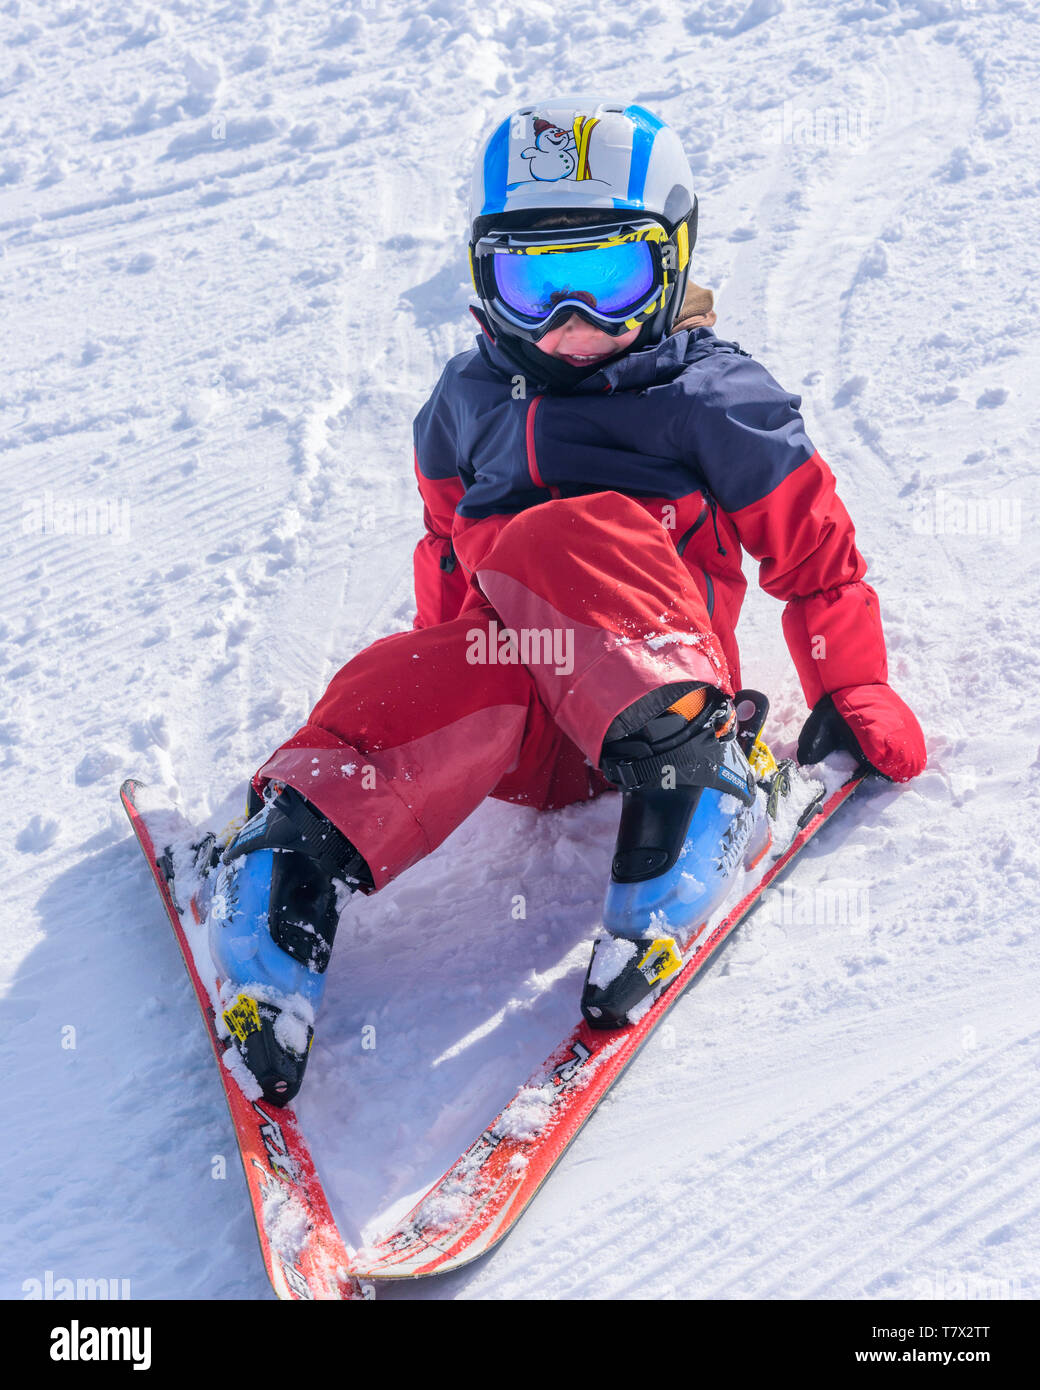 Cute little boy skiing on slope - Stock Image